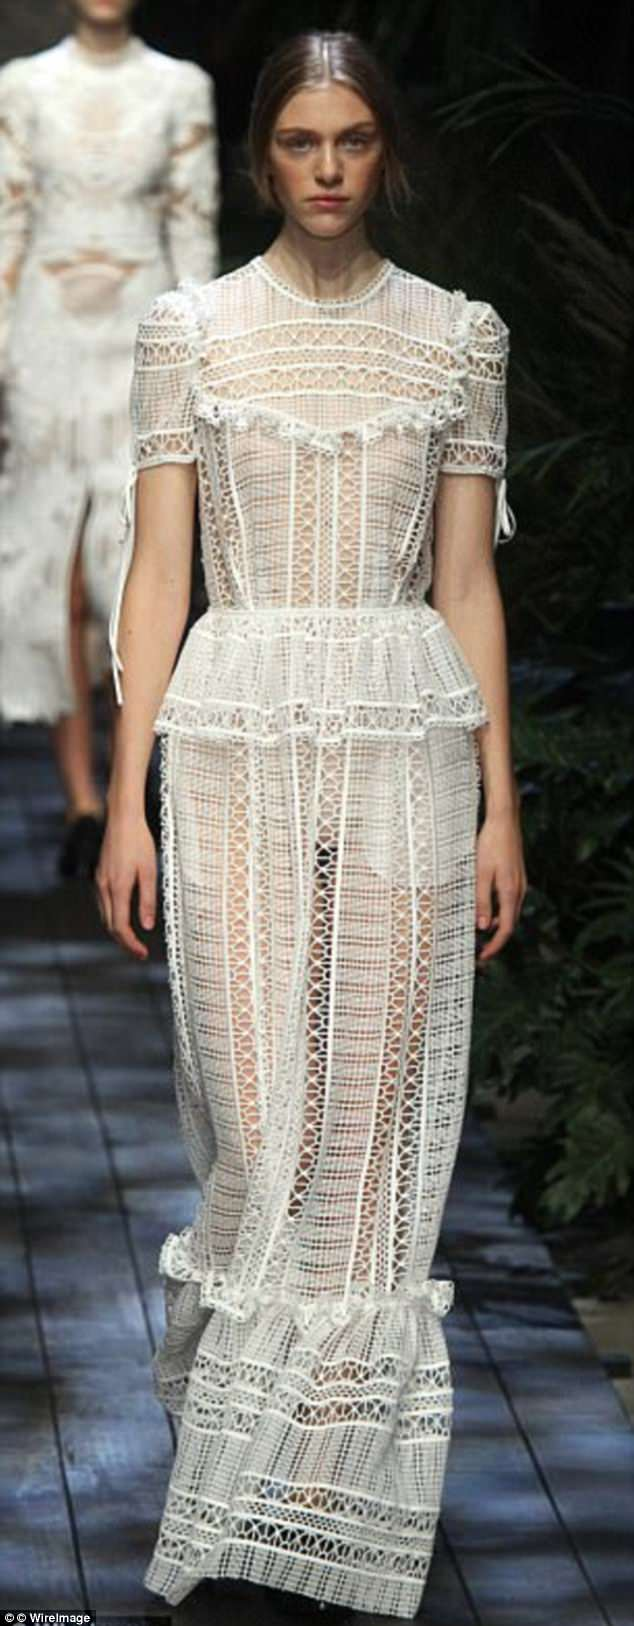 Erdem's feminine creations and fondness of lace could make him the perfect choice